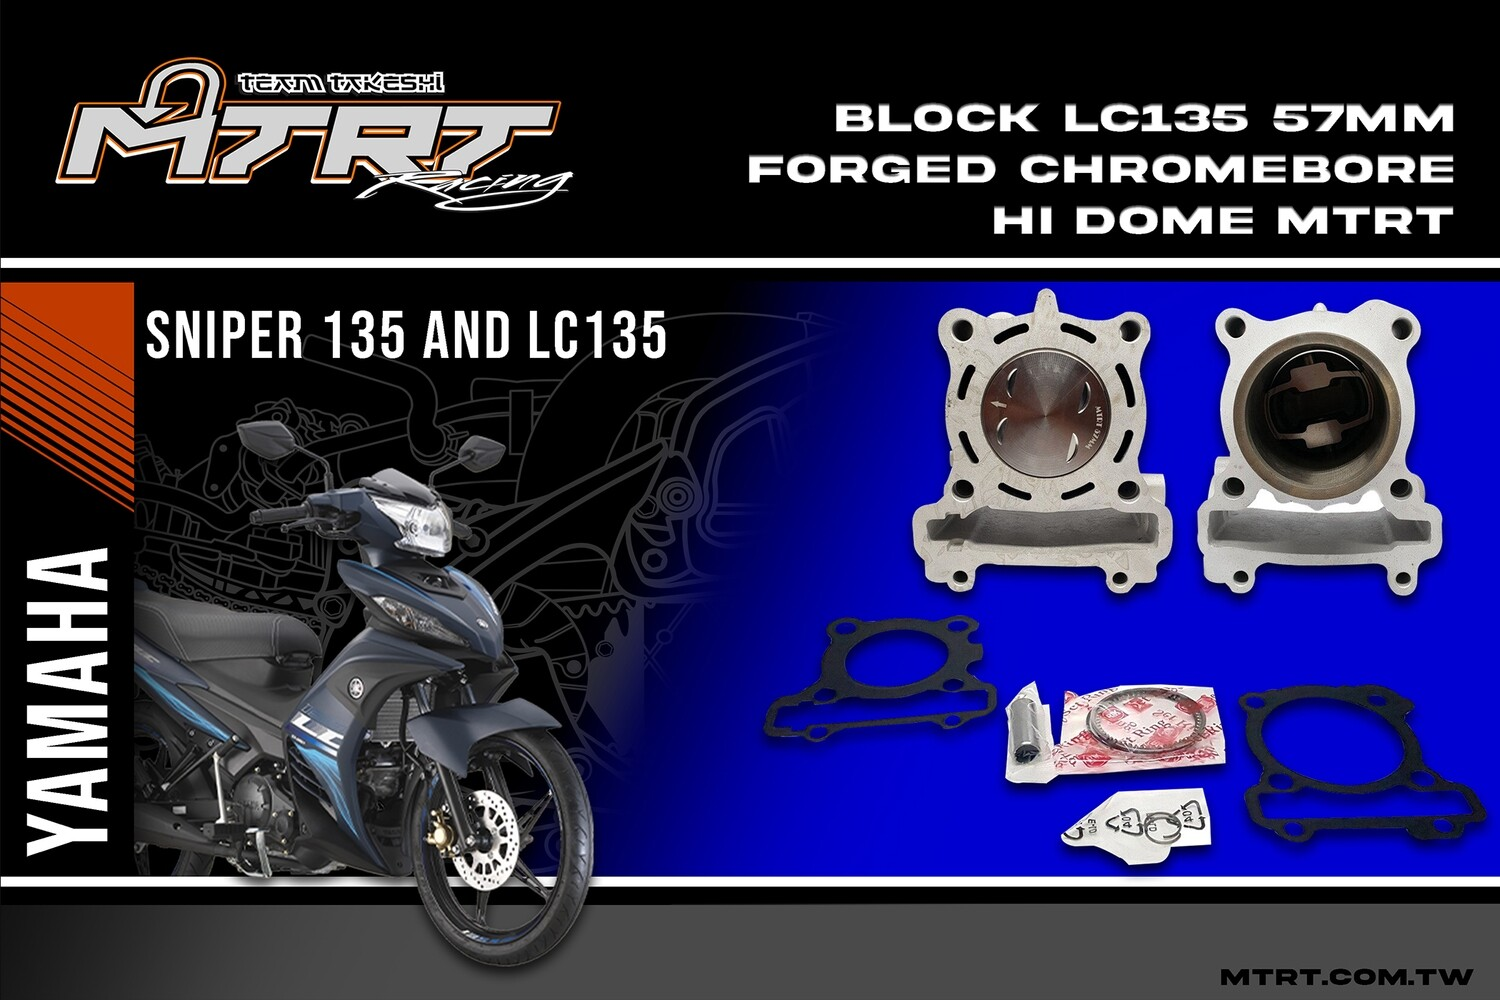 BLOCK LC135/SNIPER 57mm FORGED Chromebore hi dome  MTRT